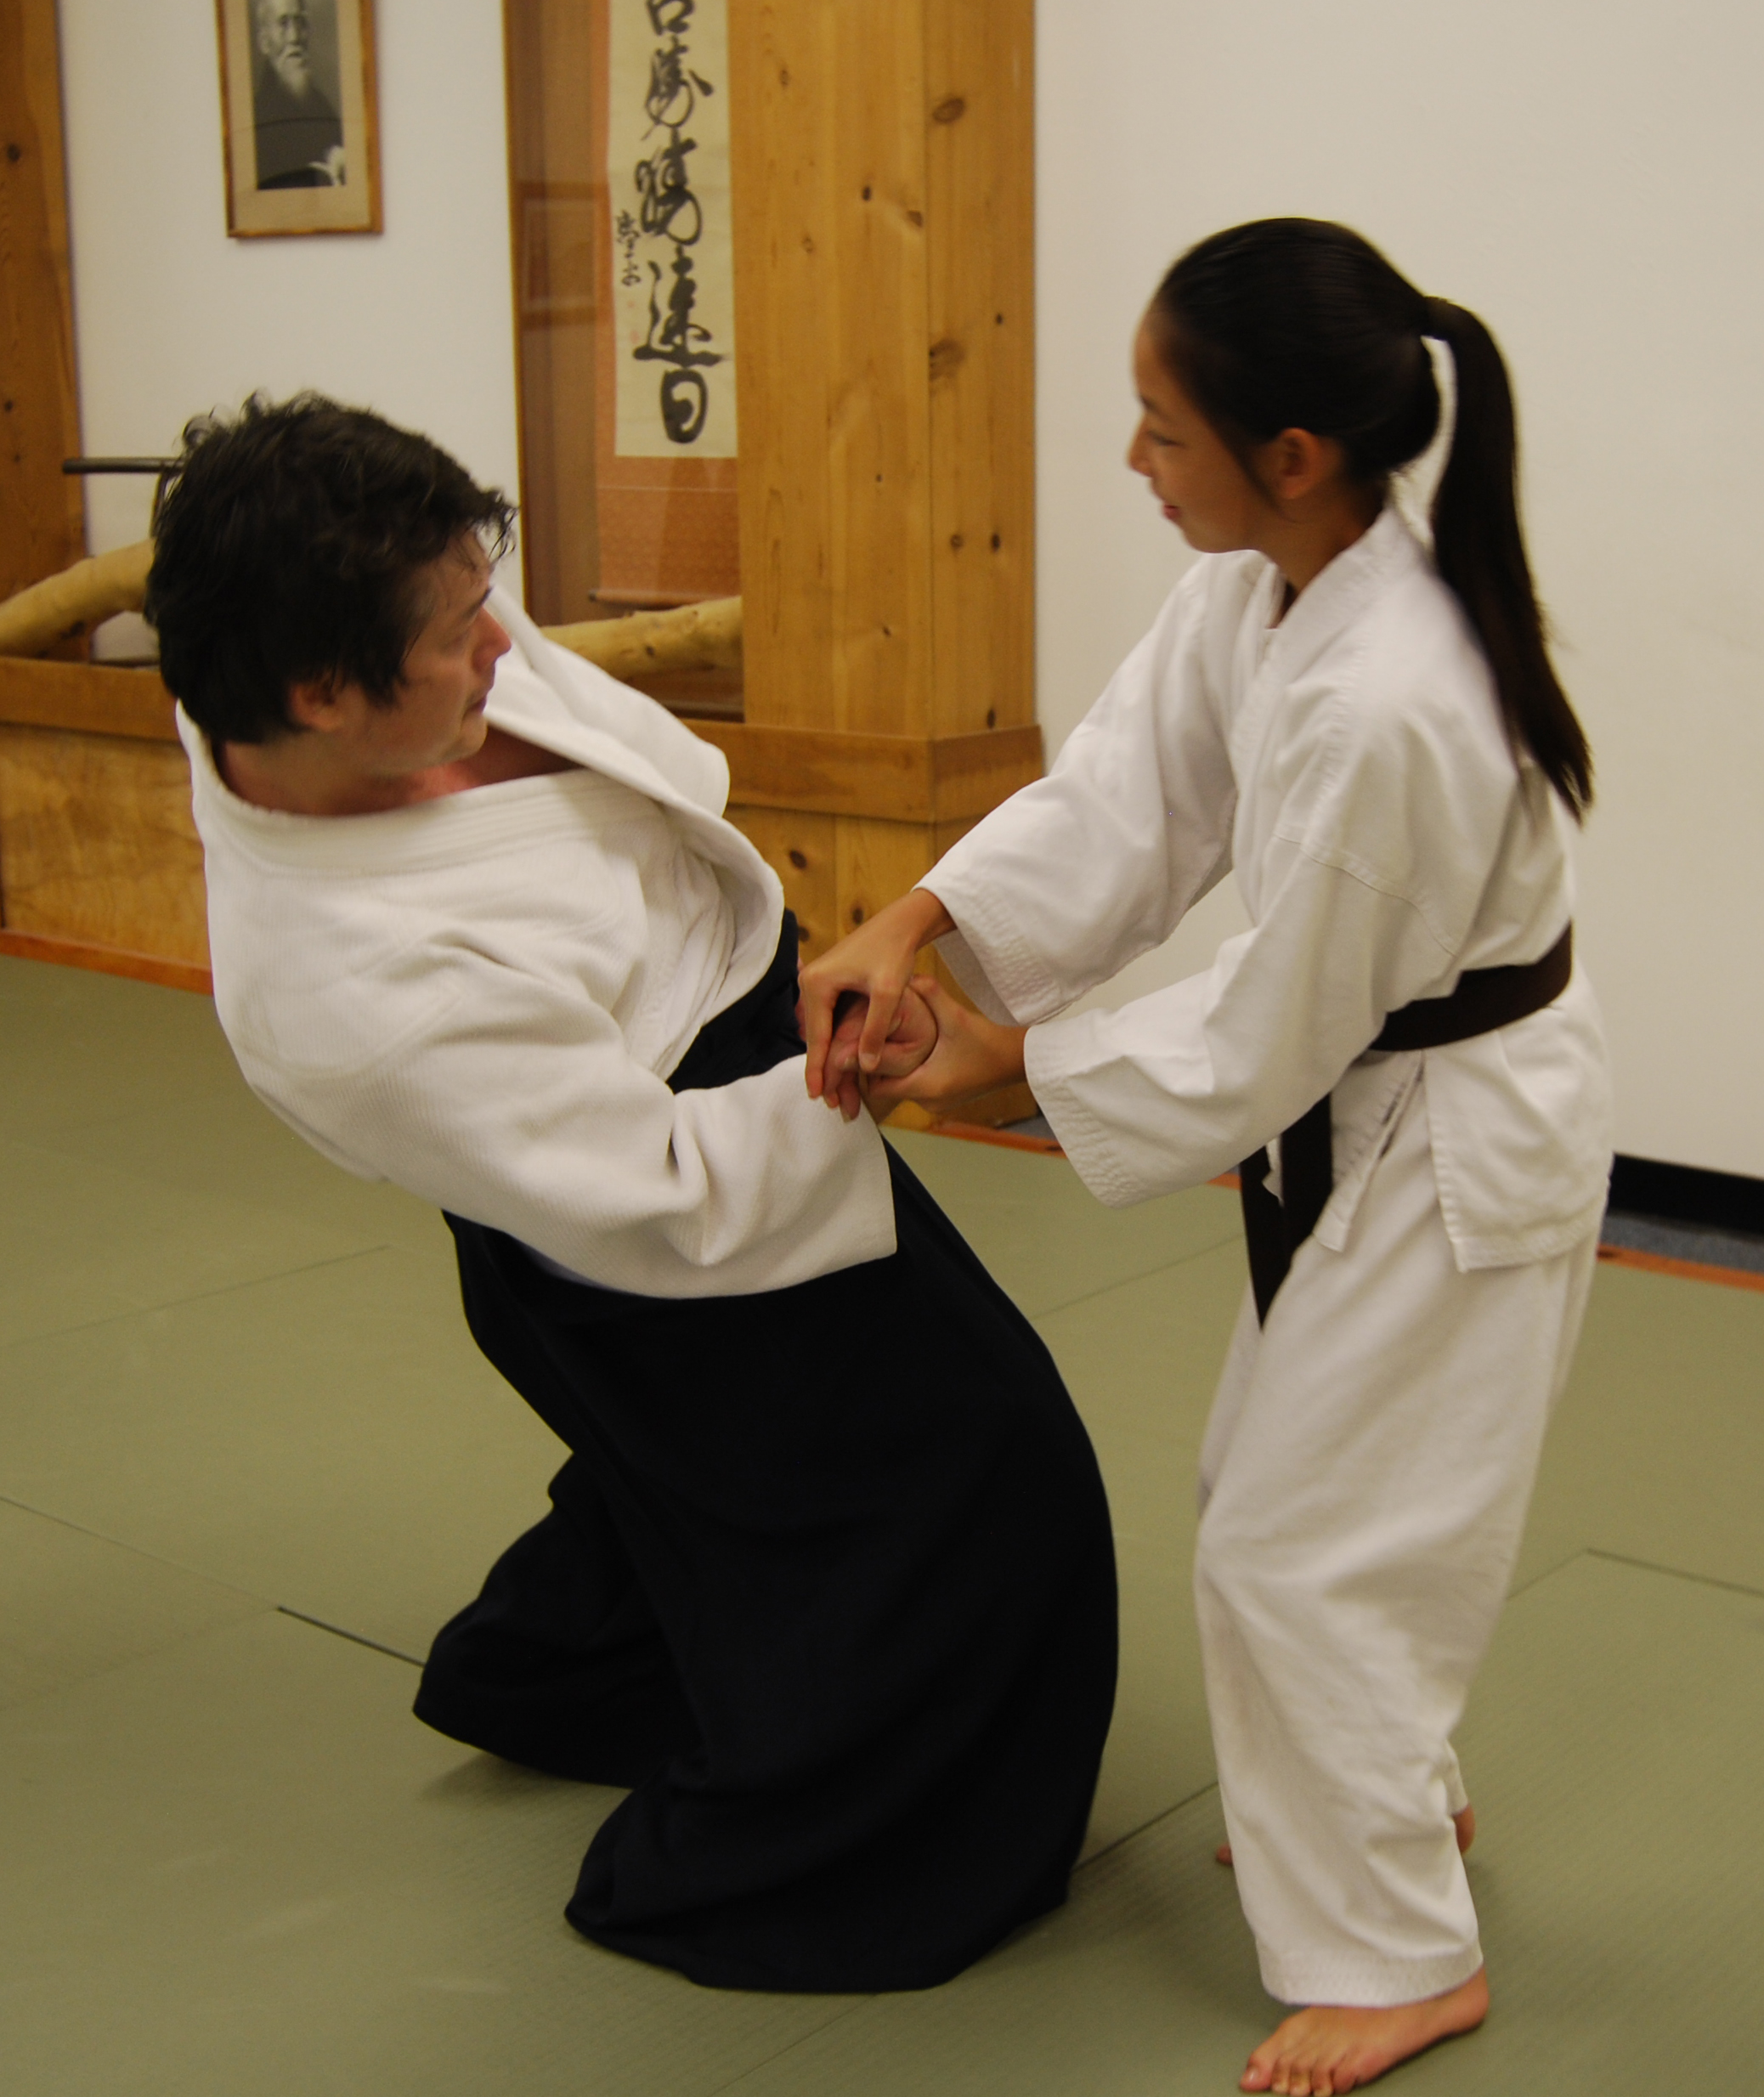 Aikido Techniques Women Are They The Same As Men Aikido411 Aikido Techniques